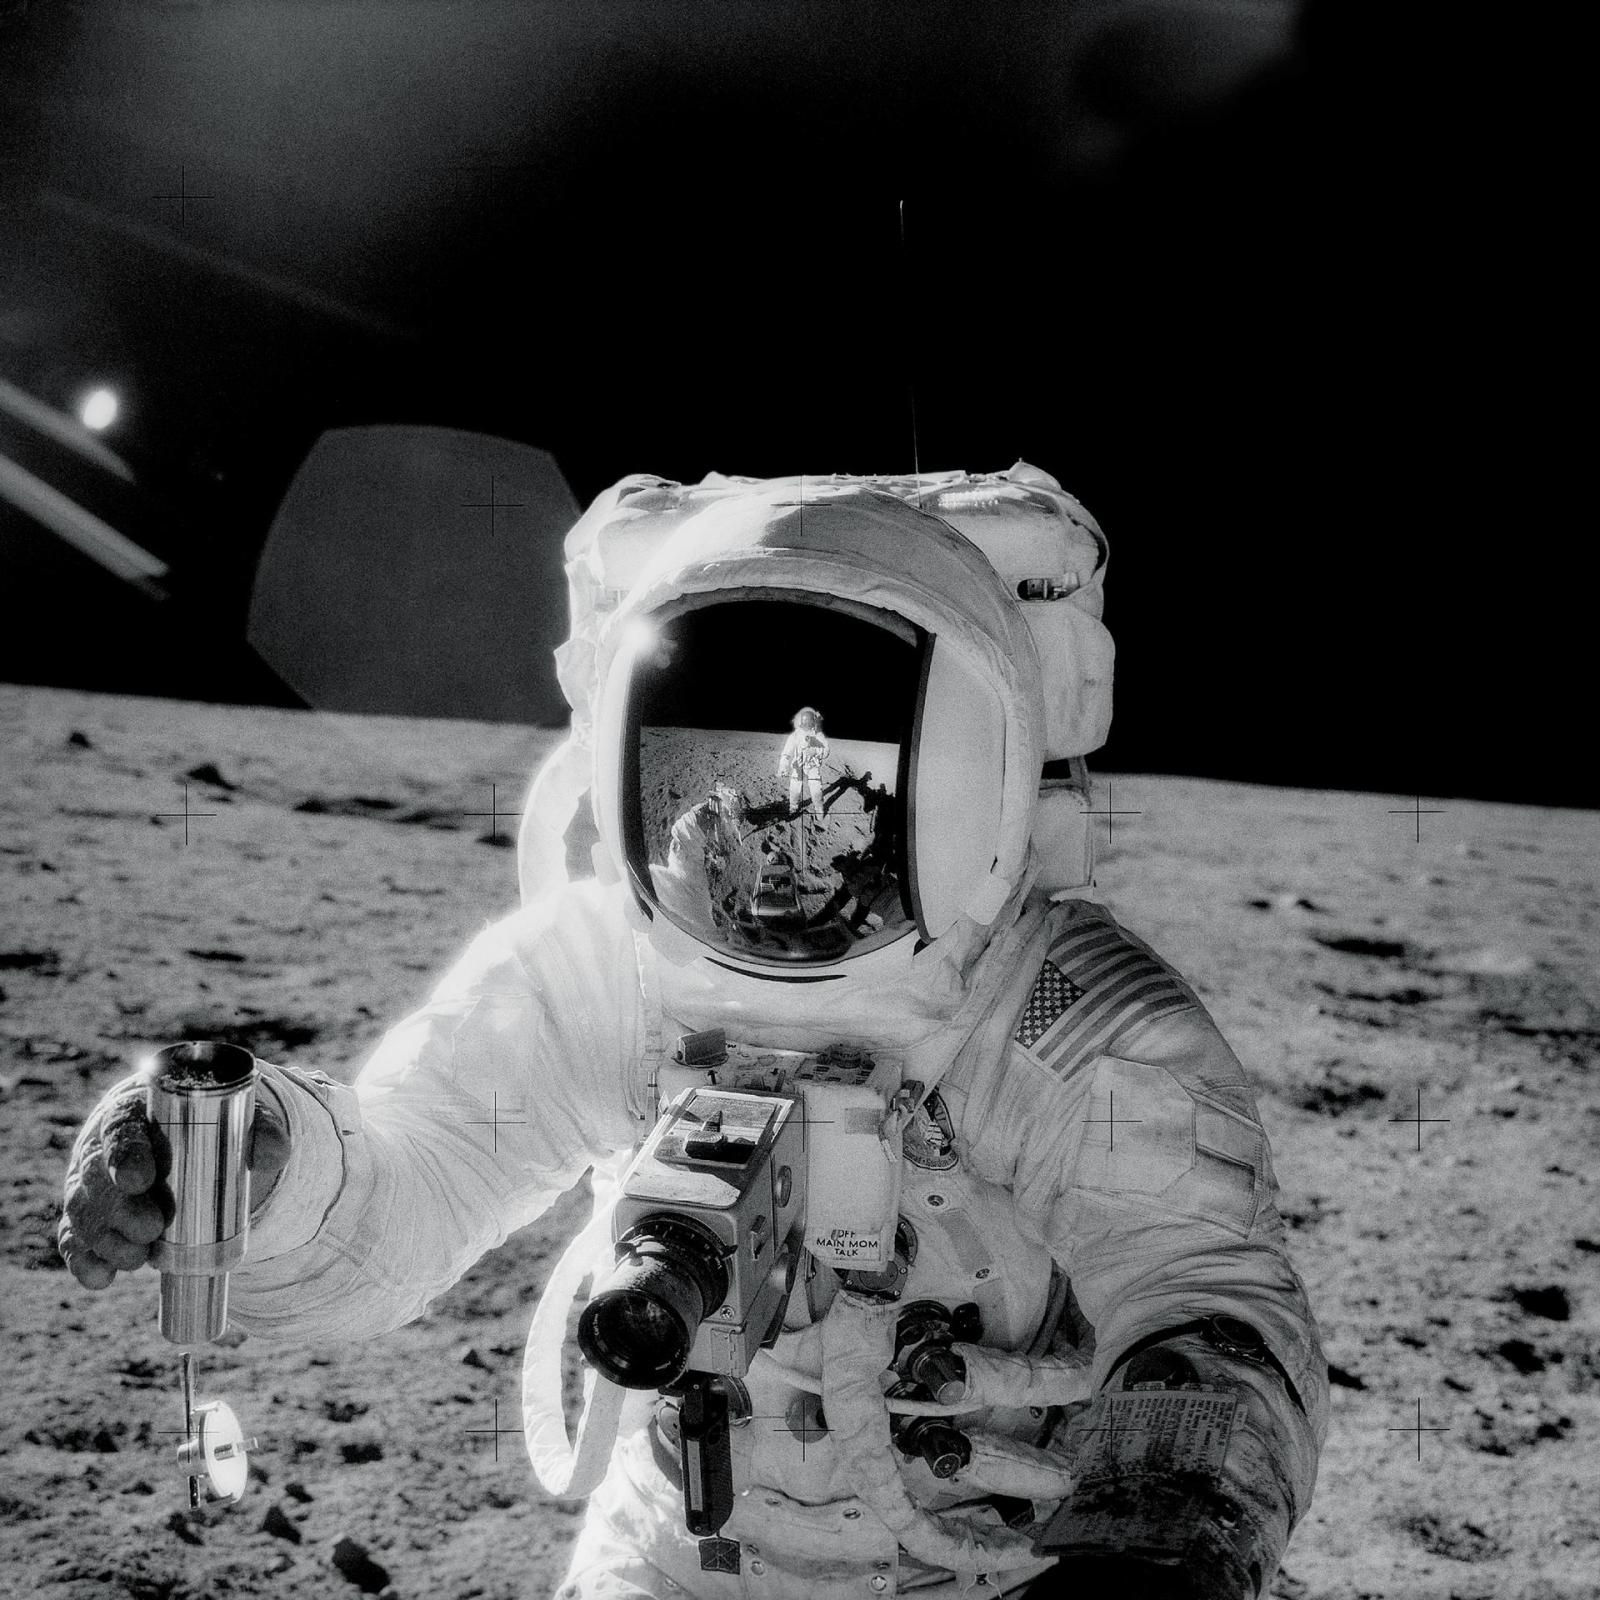 One of the astronauts on the Moon's surface is holding a container of lunar soil. The other astronaut is seen reflected in his helmet.